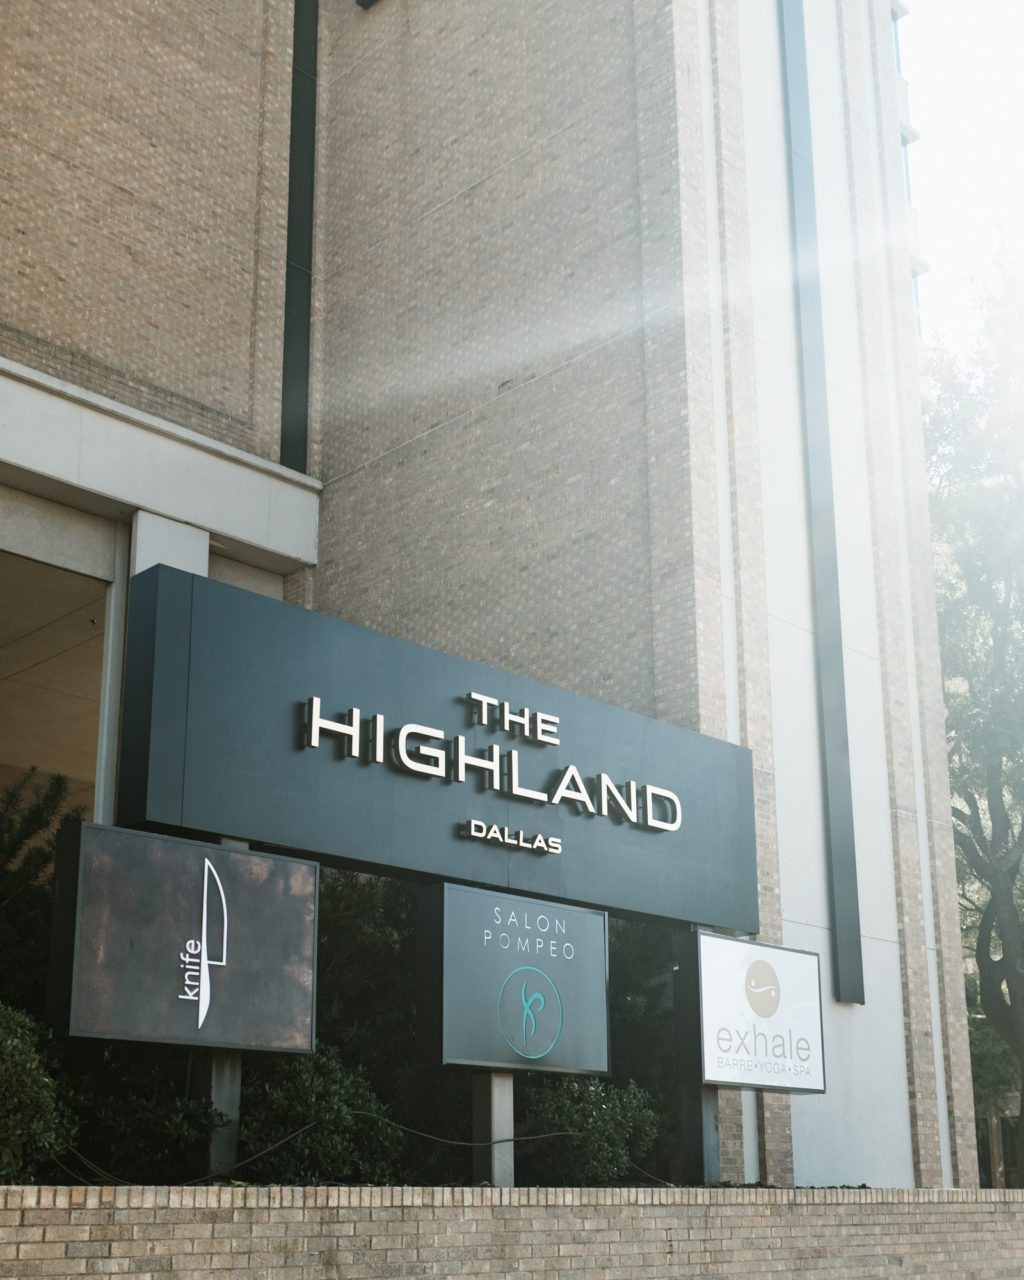 the-highland-dallas-hotel-1674